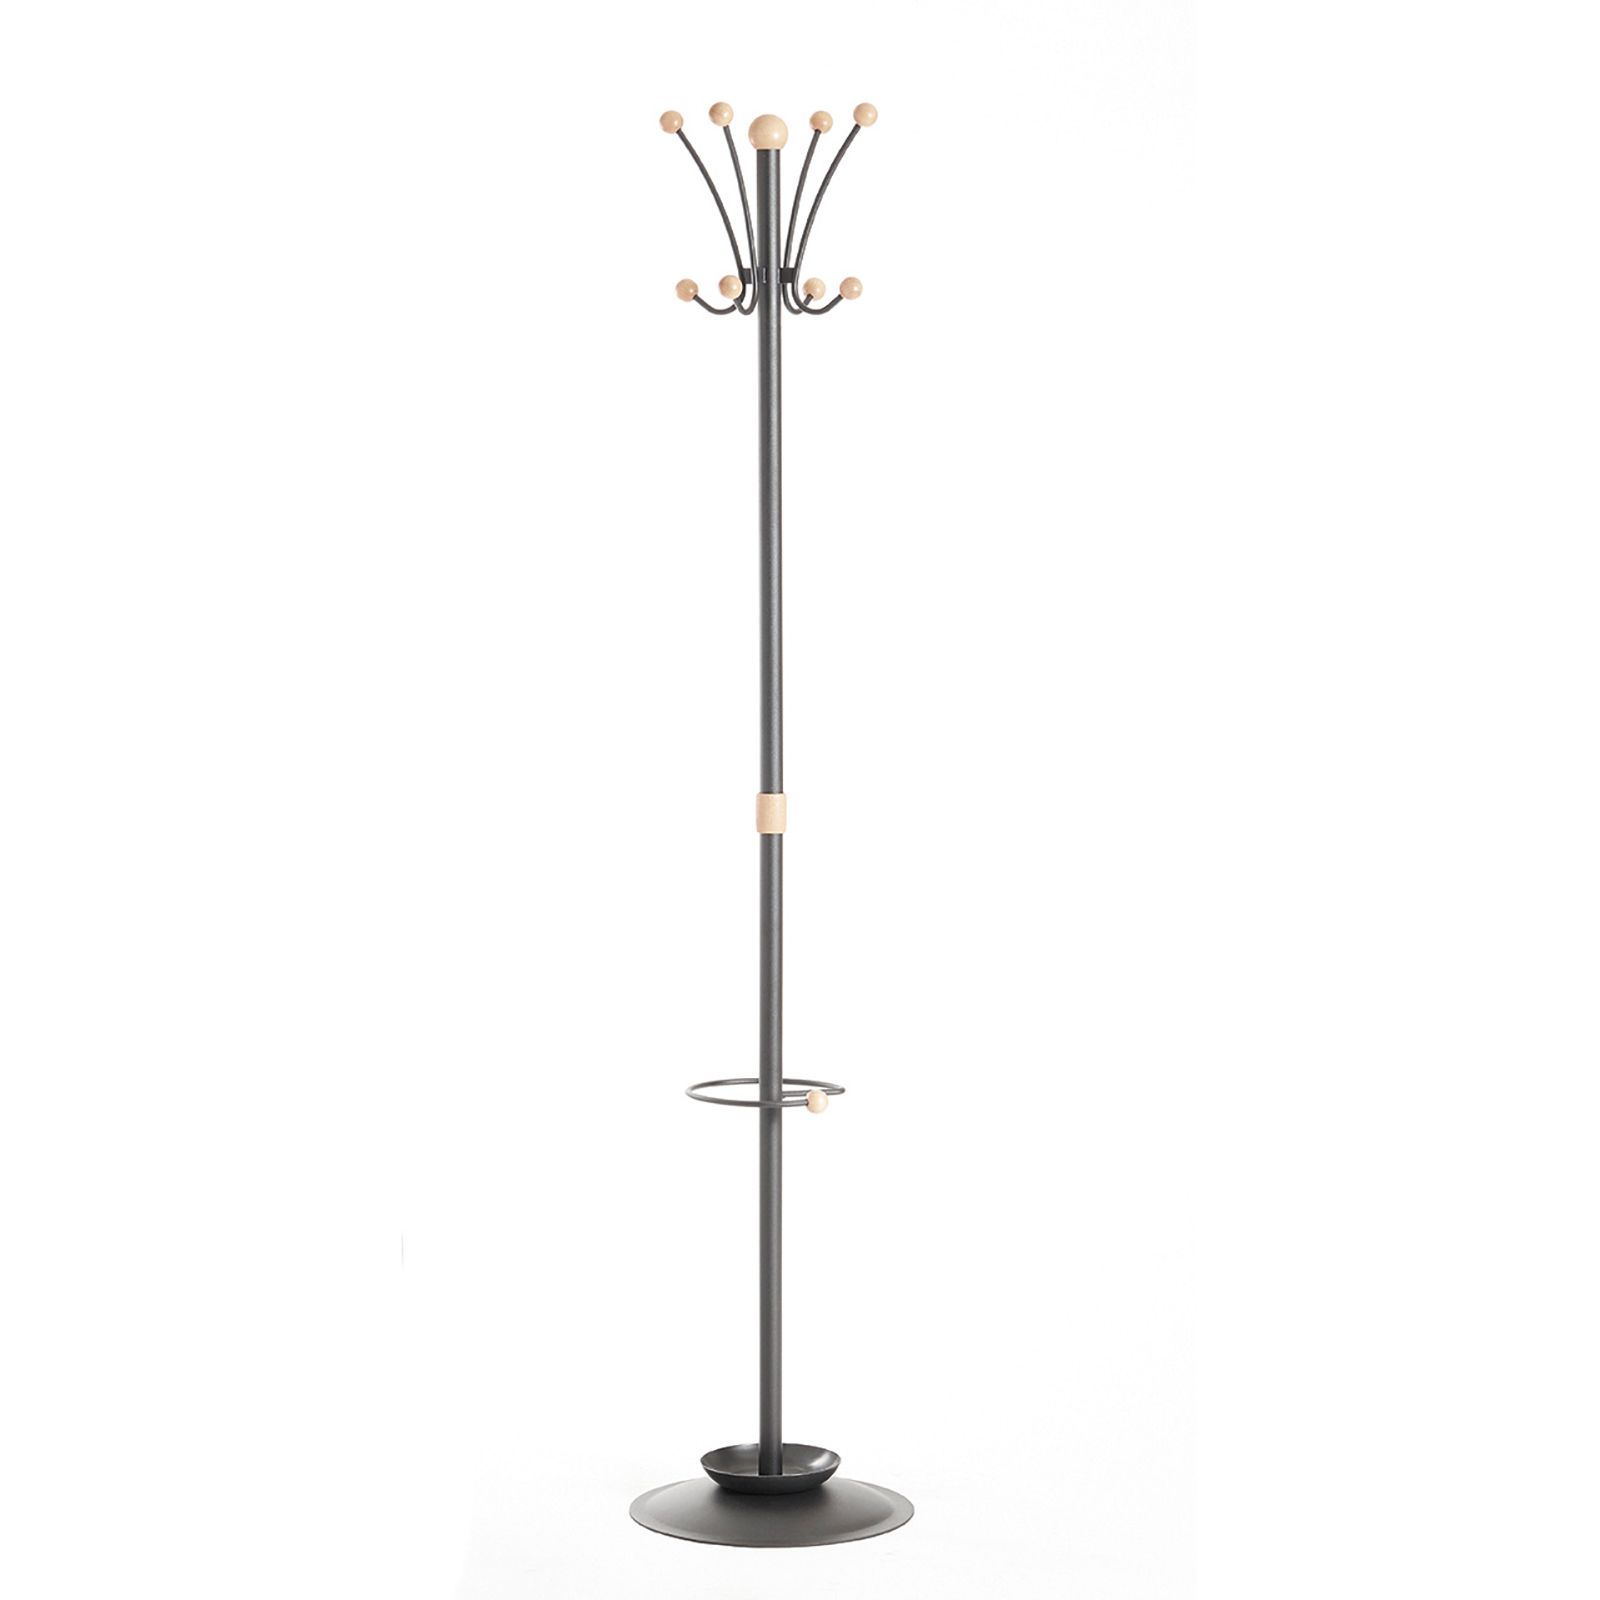 Umbrella Stands Coat & umbrella stand with 8 coat hooks and 8 umbrella hooks 1780mm high - black and cream